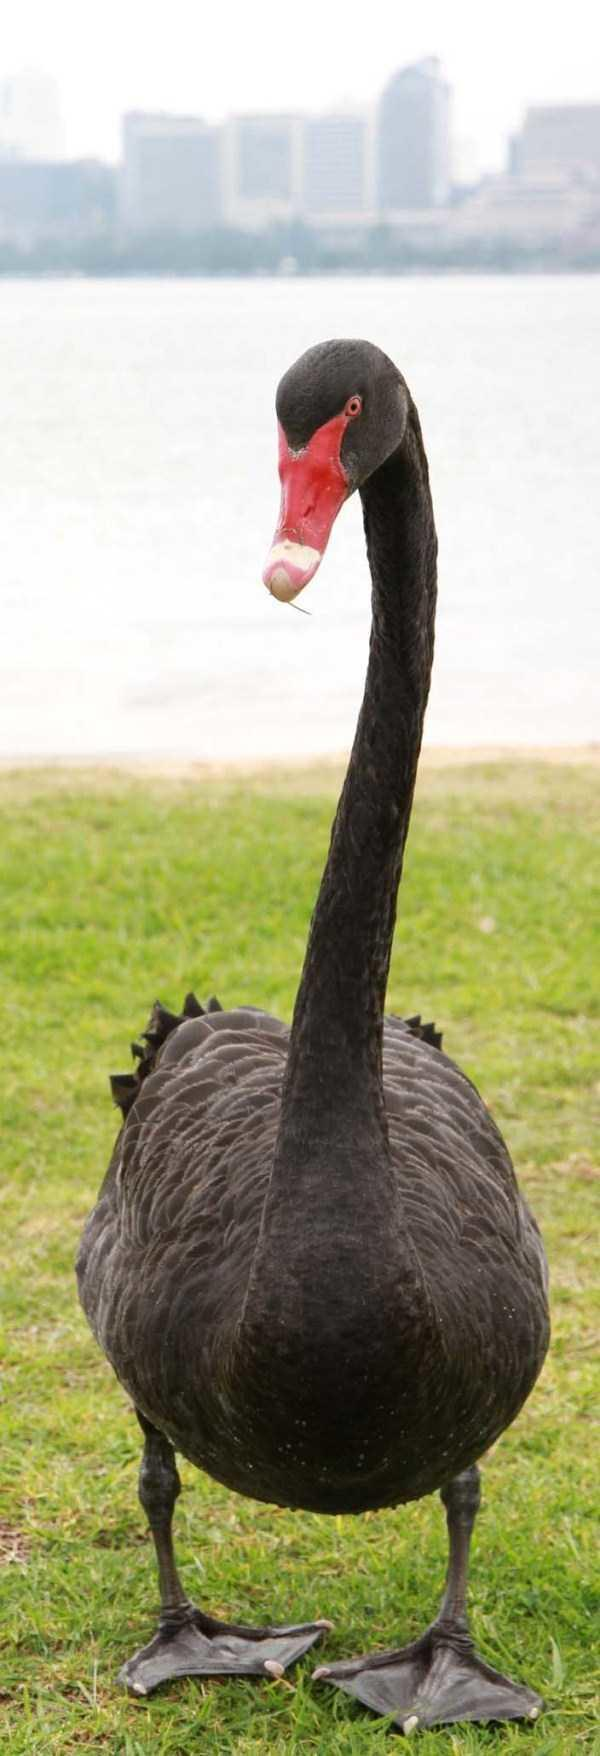 black-swan-photos-18